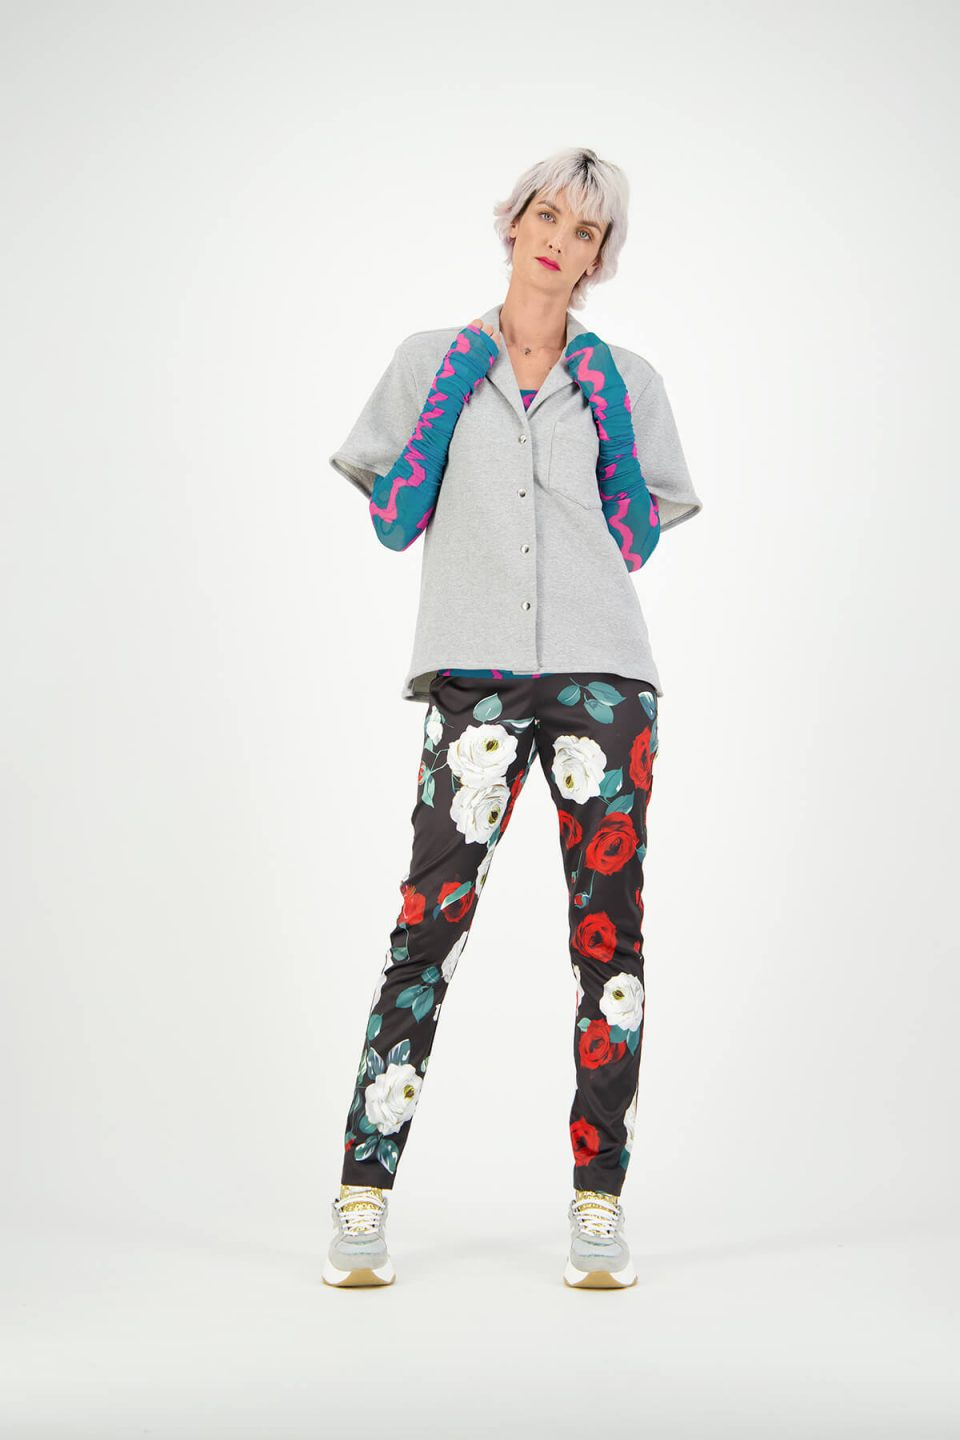 Women's fashion model studio photoshoot wearing floral pants and grey button up tee-shirt